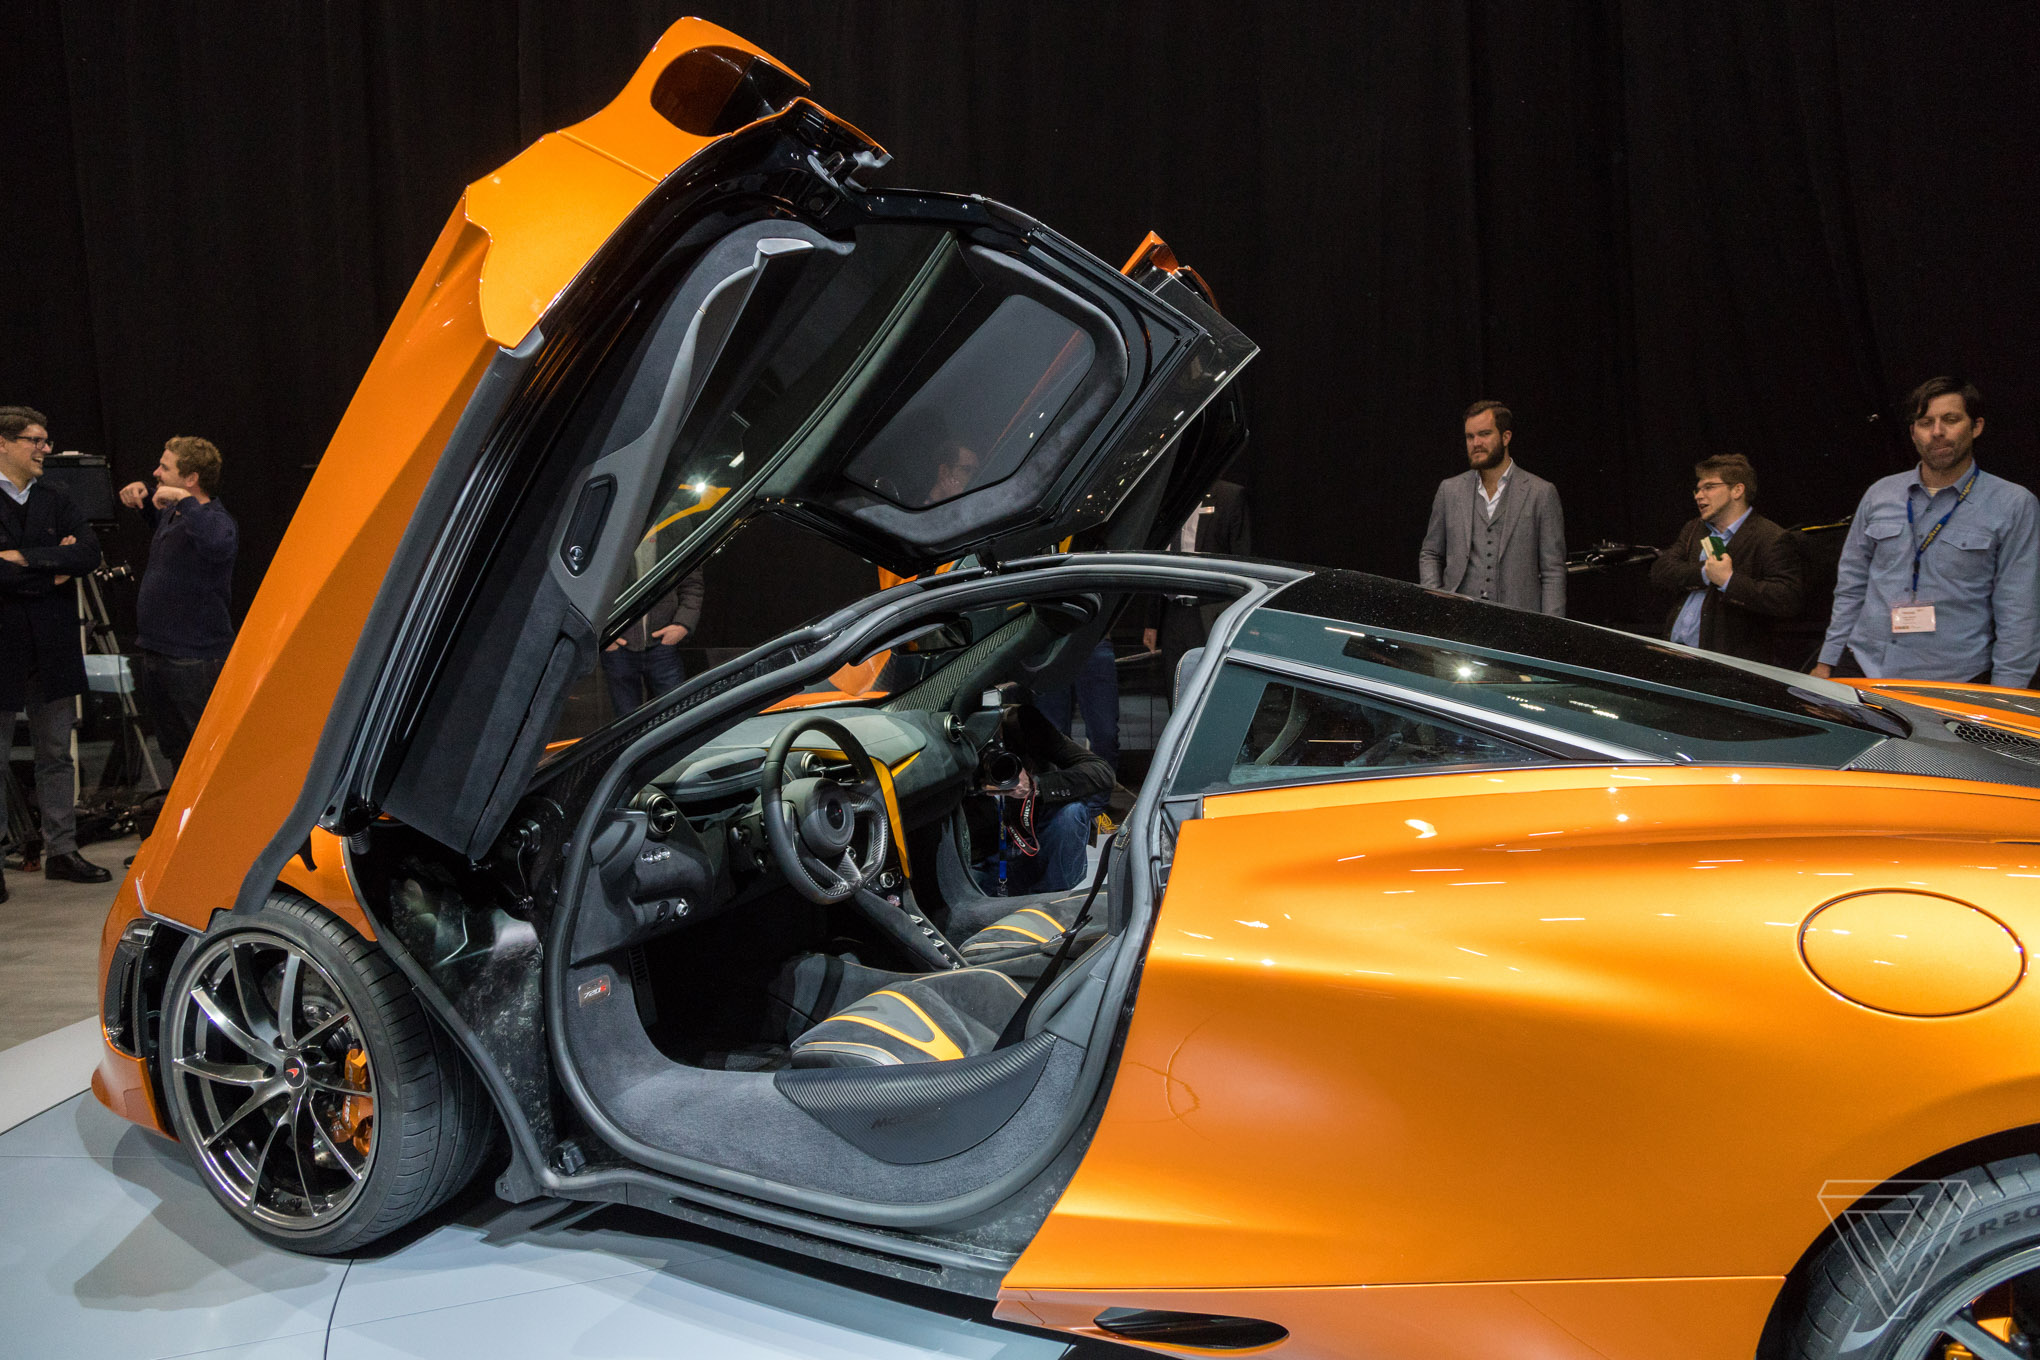 Mclaren S Top Priorities With The New 720s Aerodynamics